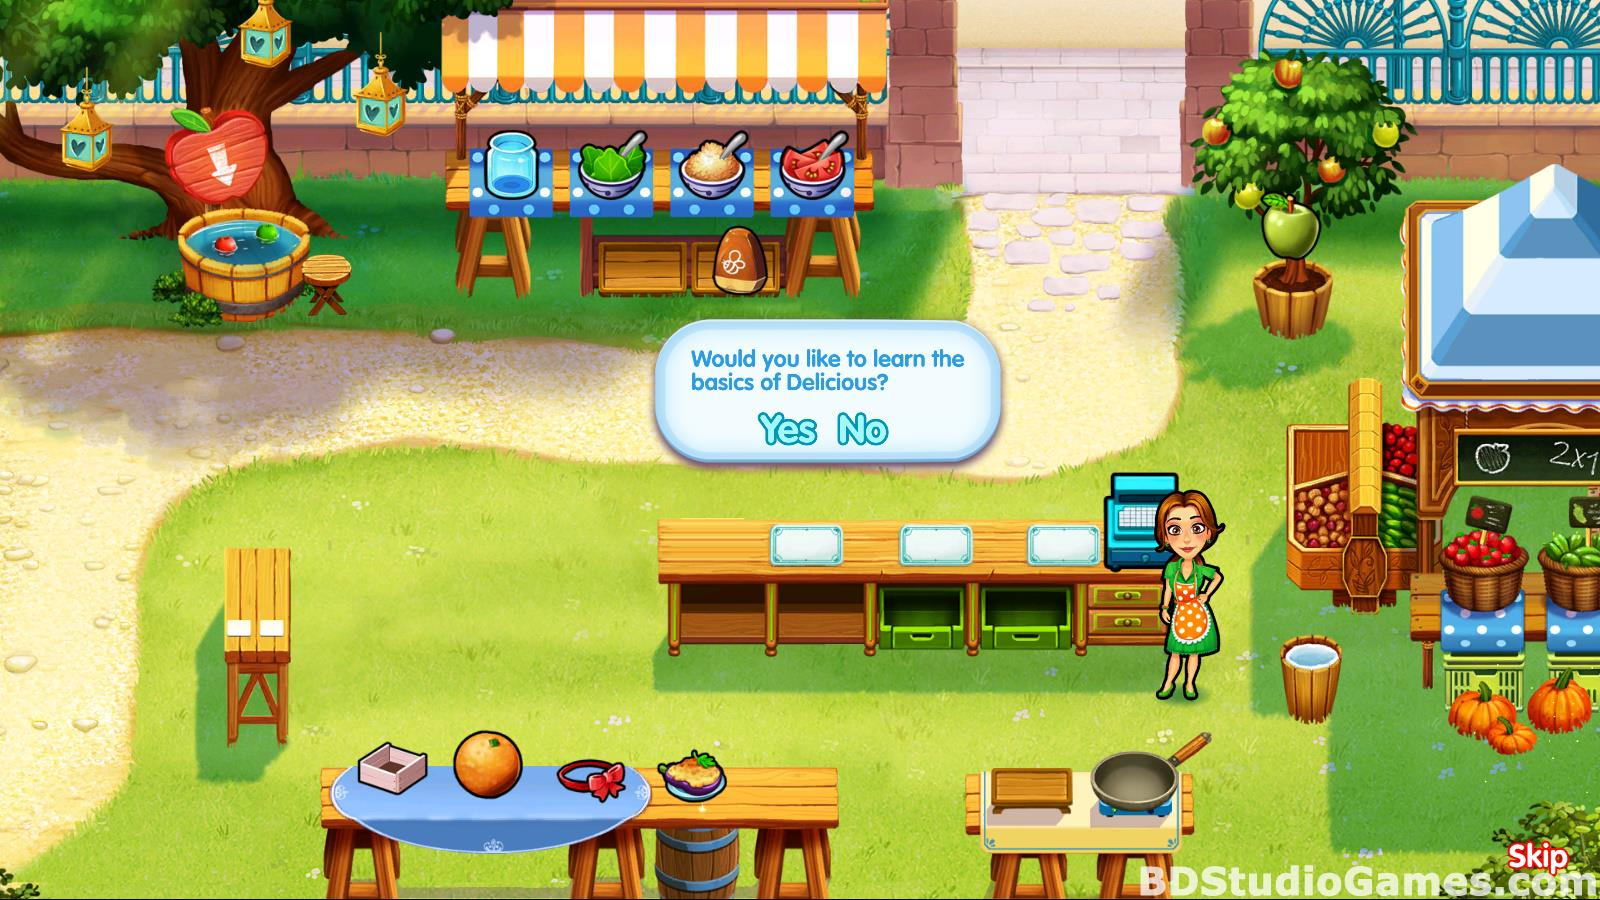 Delicious: Emily's Road Trip Collector's Edition Free Download Screenshots 04